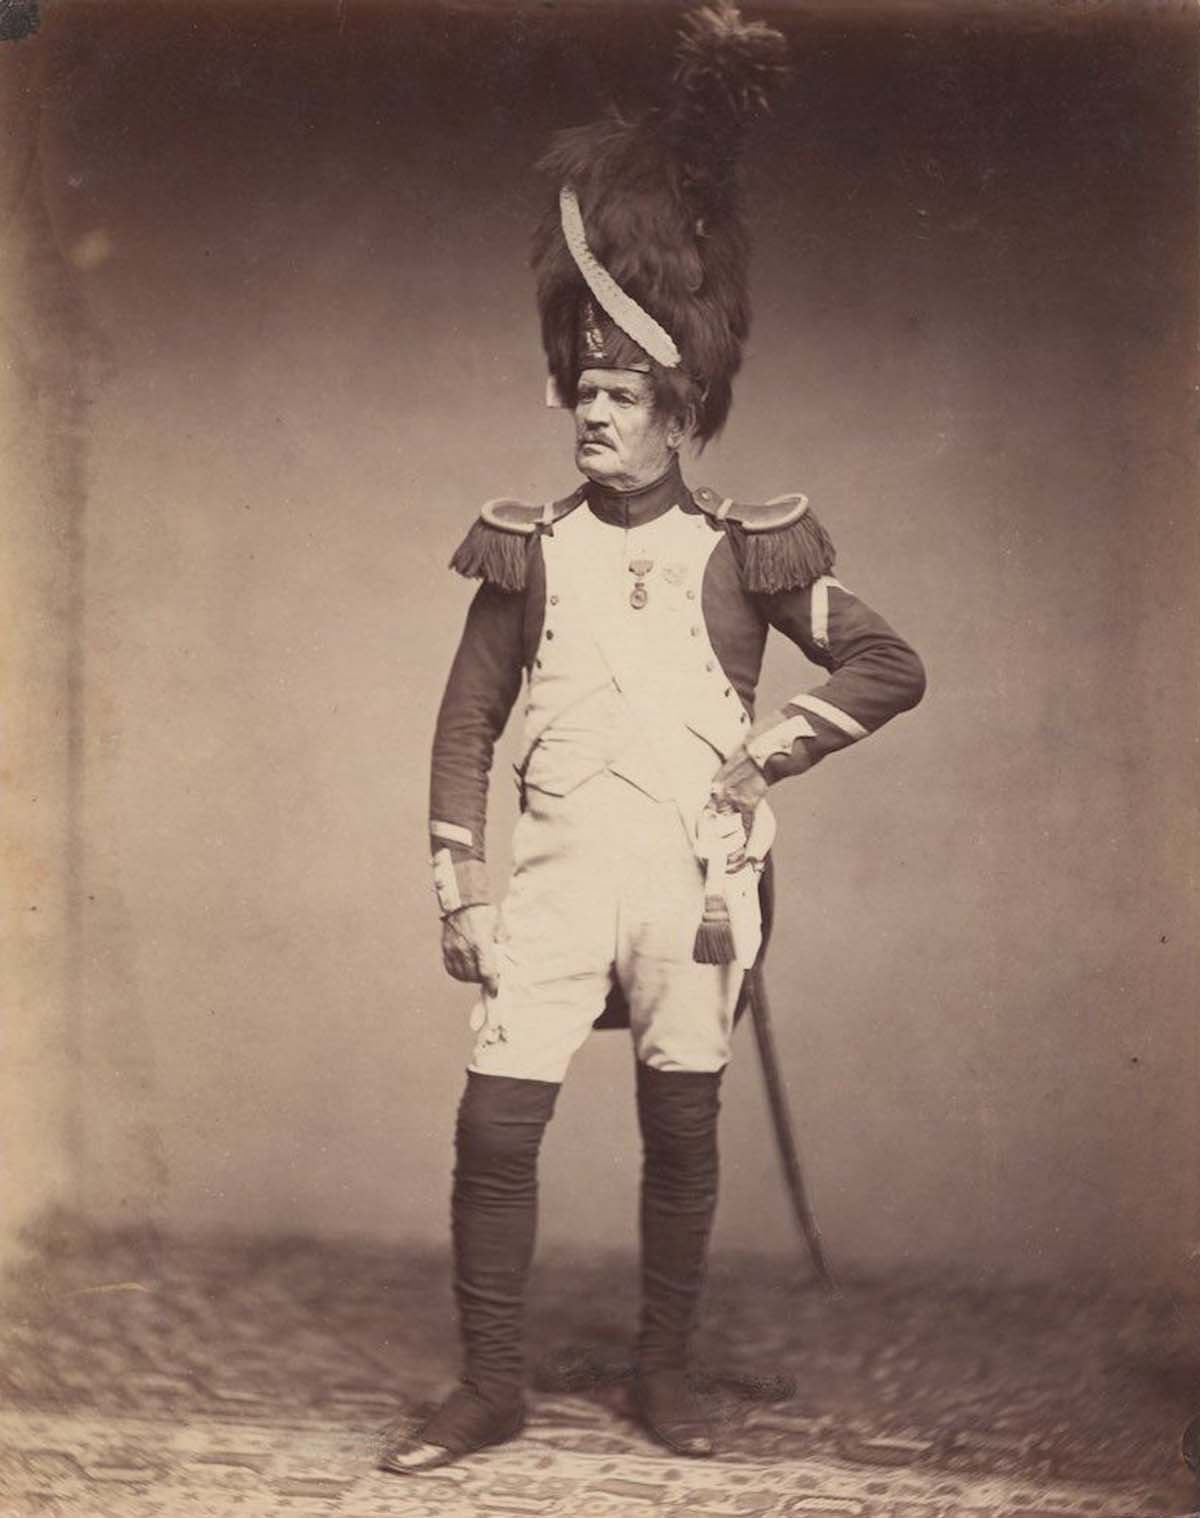 Sergeant Taria in the uniform of the Grenadiere de la Garde of 1809-1815.